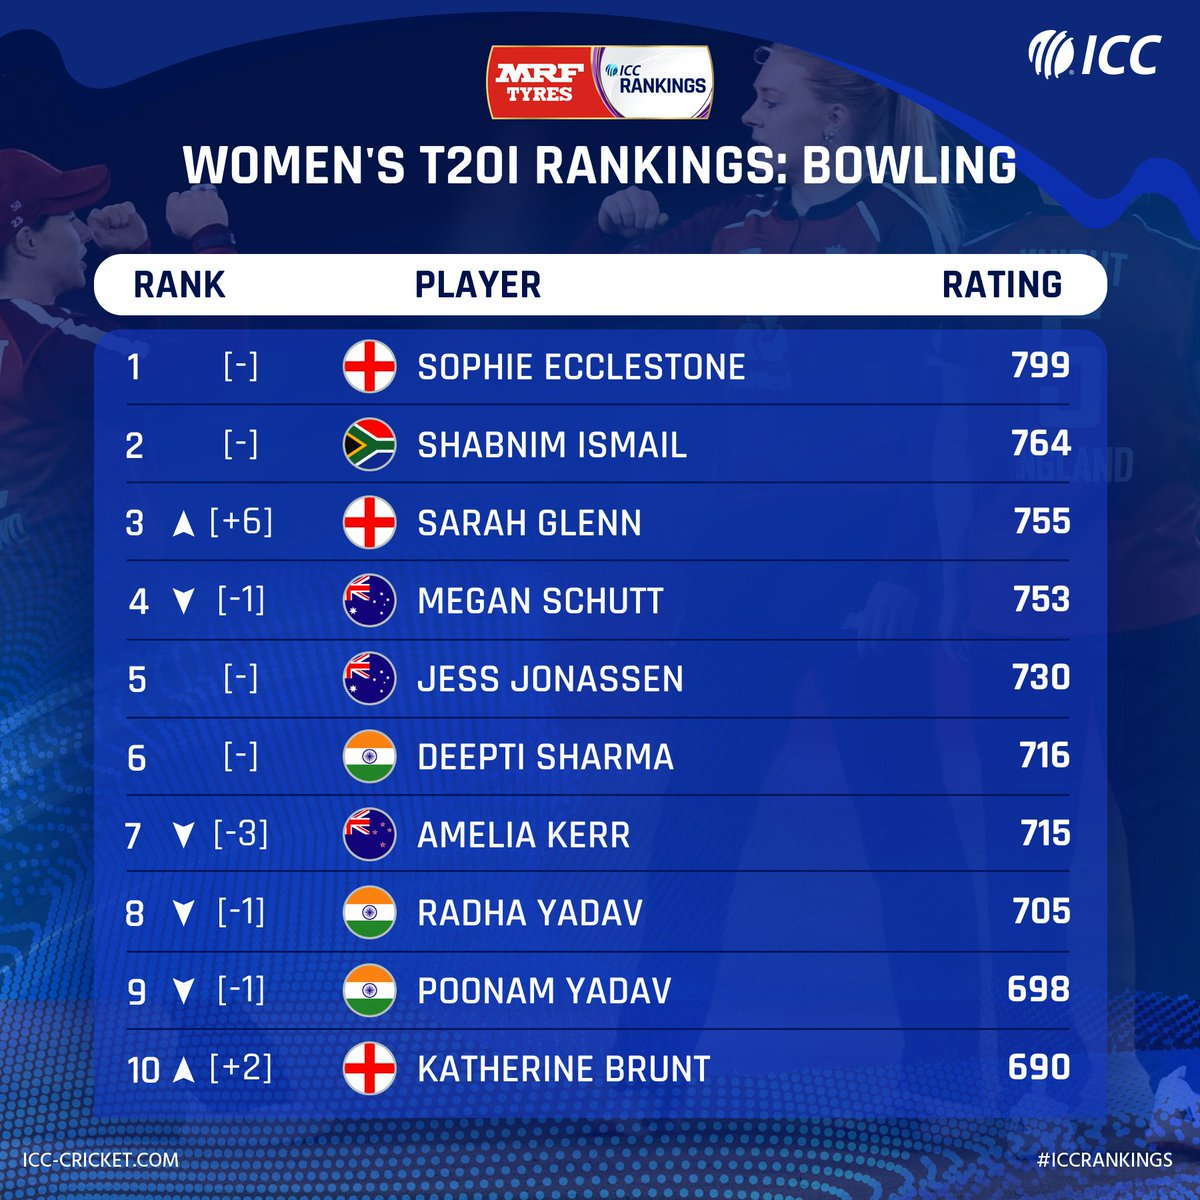 🔥 Sarah Glenn storms into top three 🙌 Katherine Brunt moves up to No.10   England bowlers make significant gains in the latest @MRFWorldwide ICC Women's T20I Rankings update.  Full list: